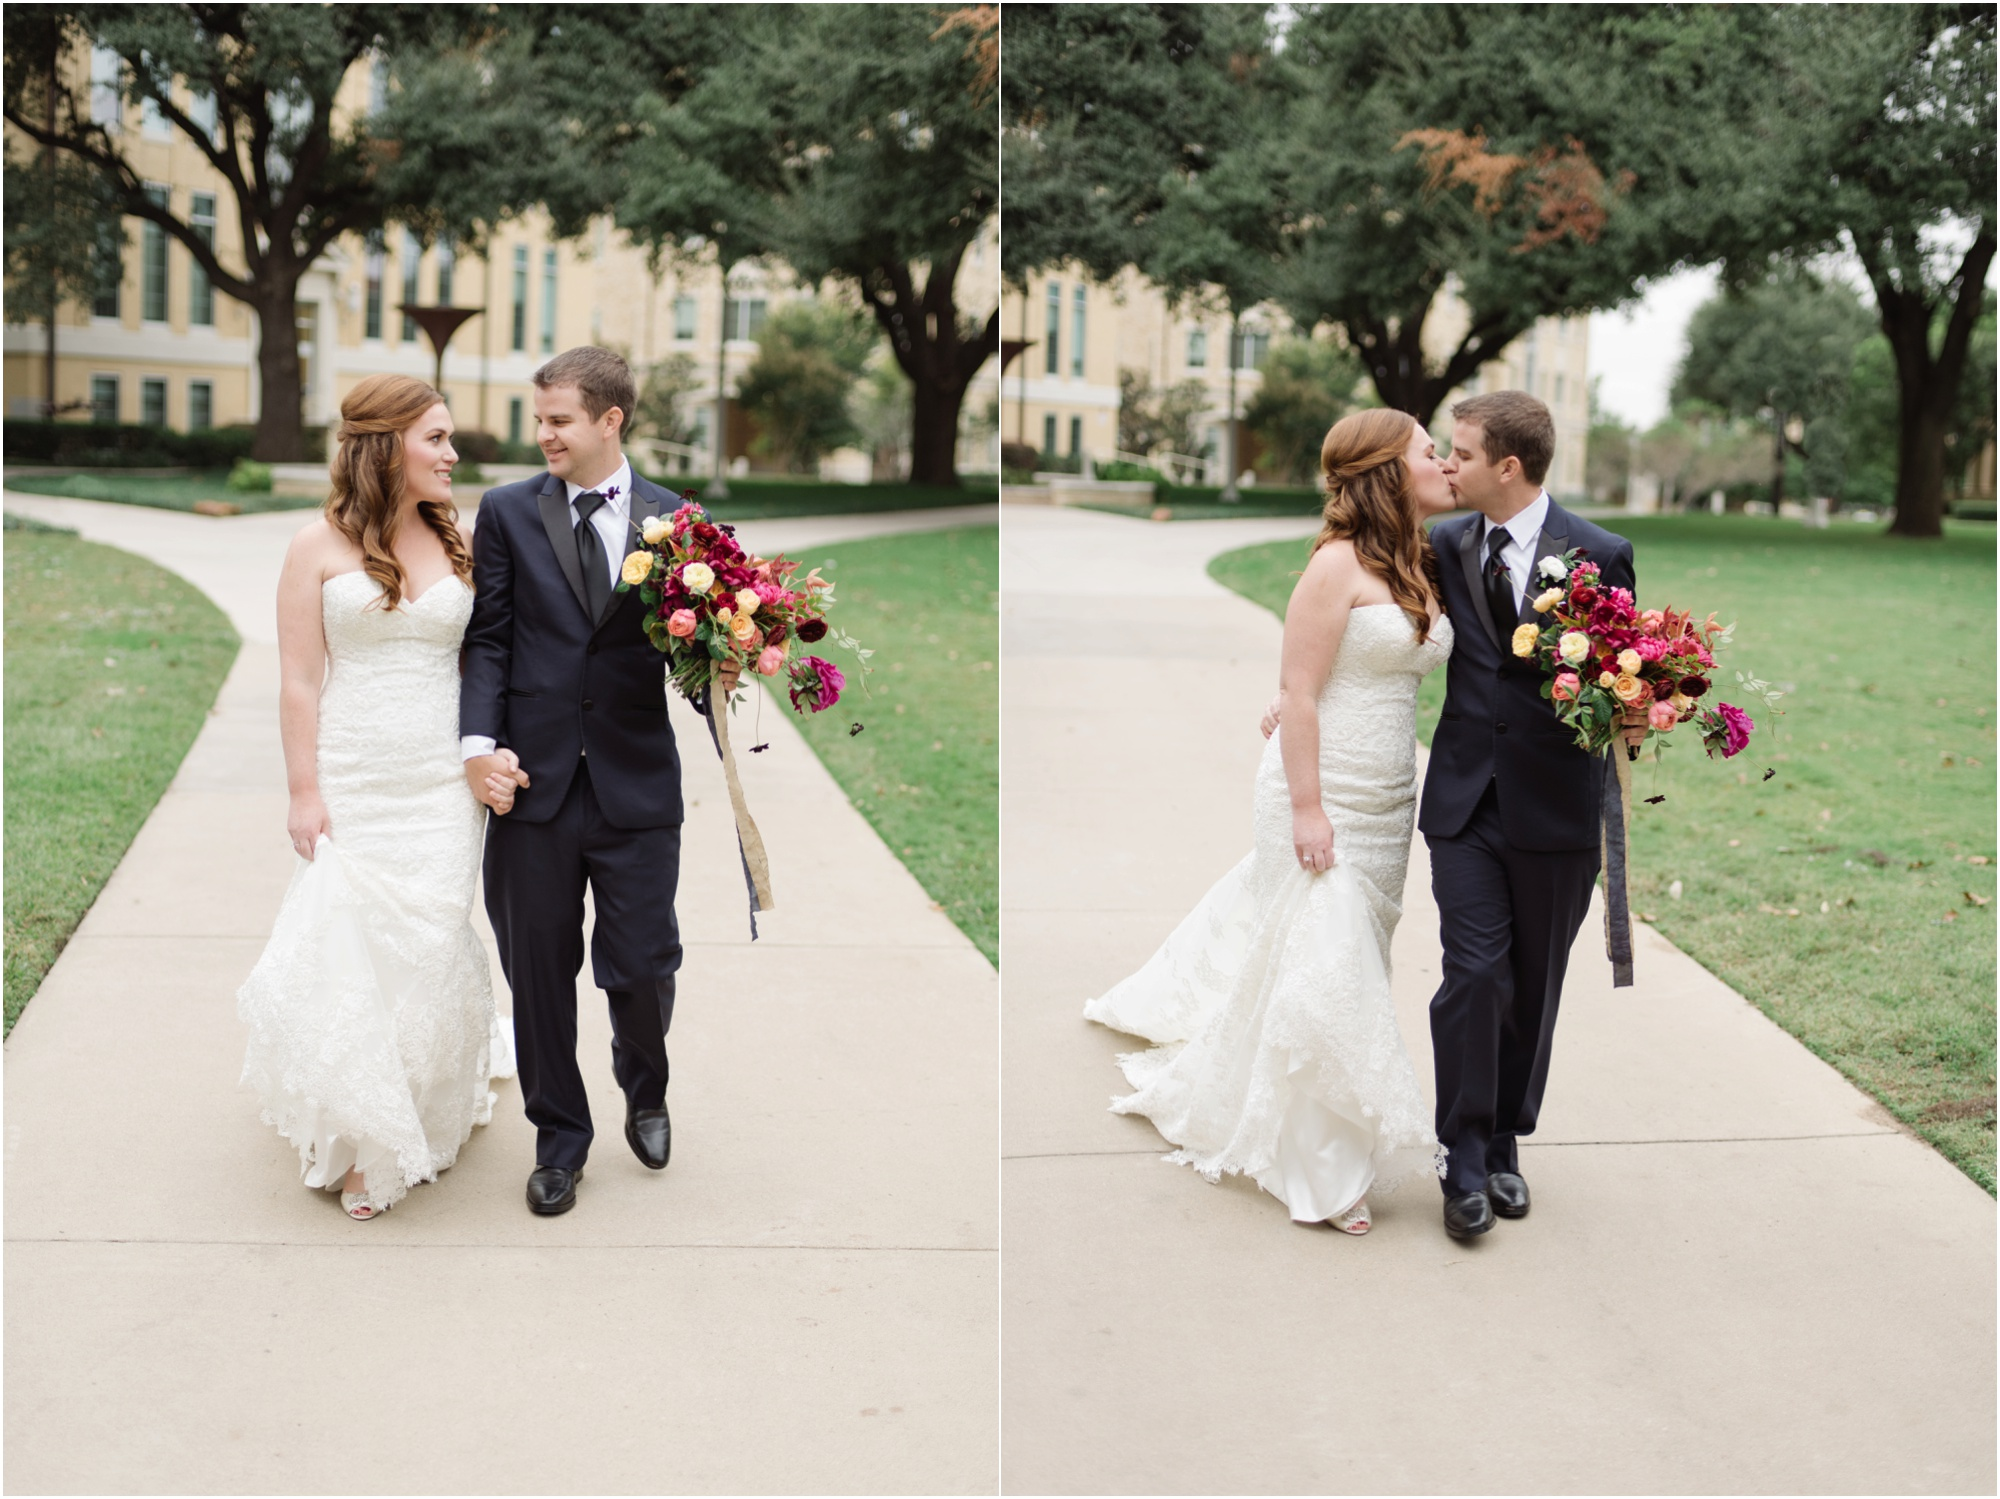 dallasweddingphotographer_mattandjulieweddings_fortworthweddingphotographer_0190.jpg